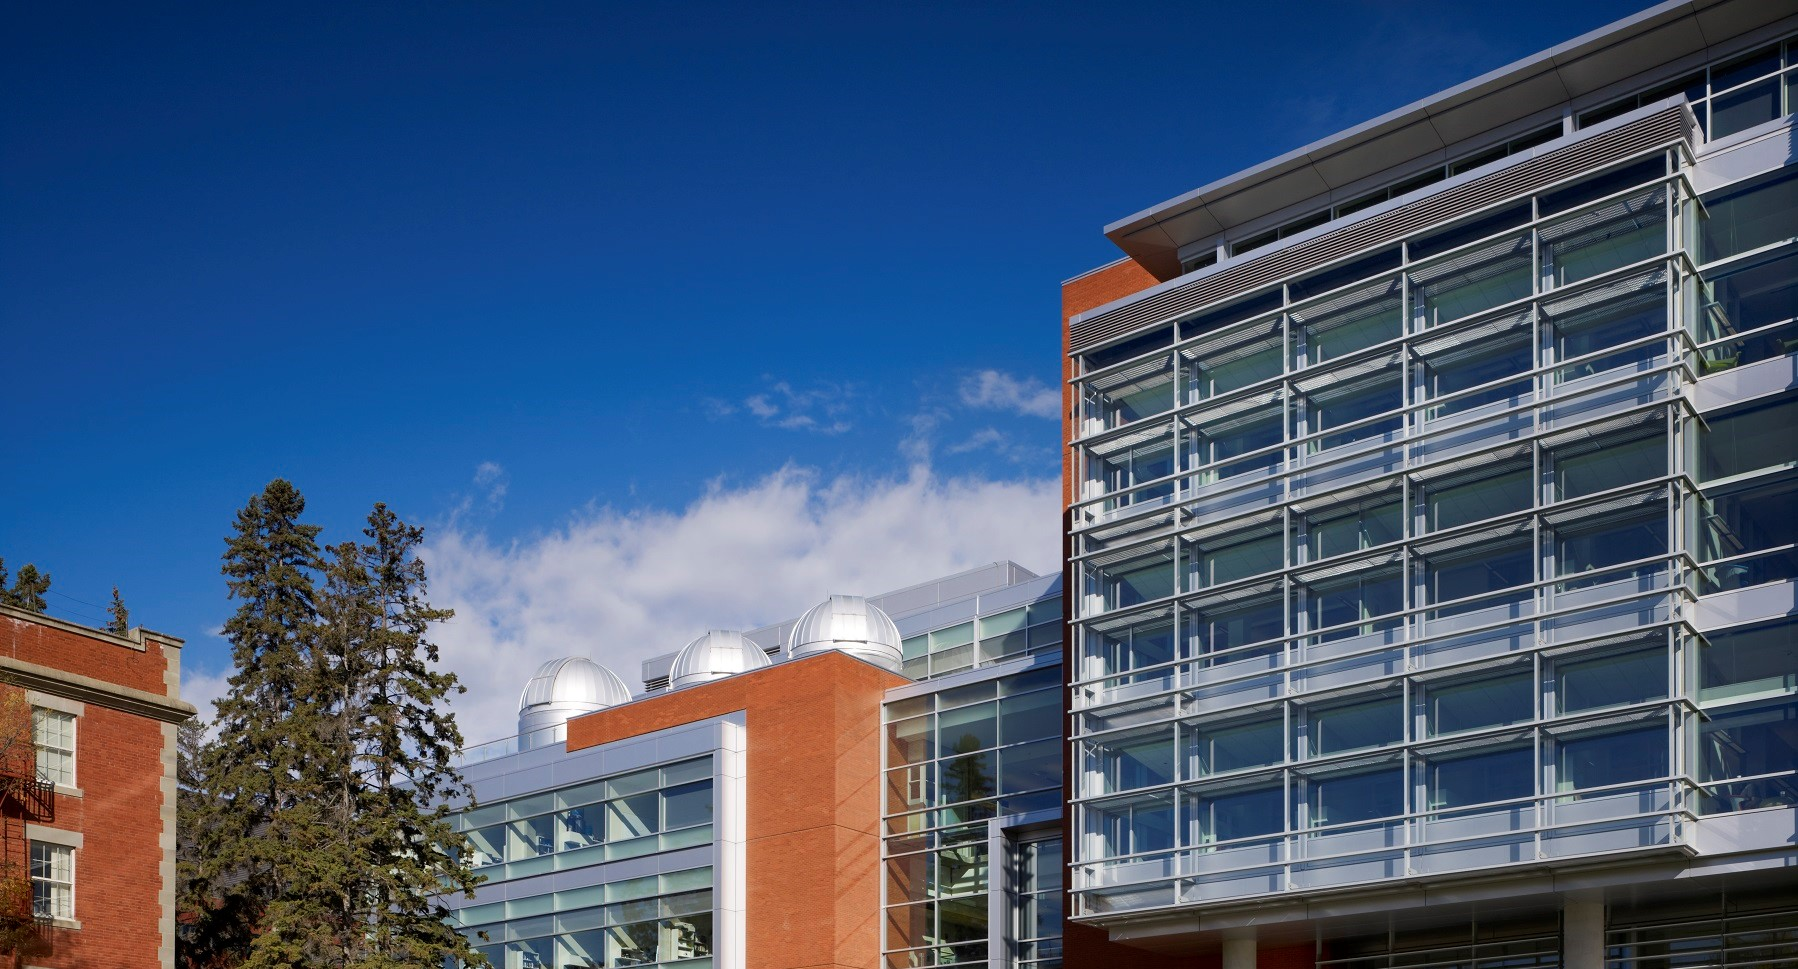 The Faculty of Science's CCIS building in the daytime with students walking through the Quad.